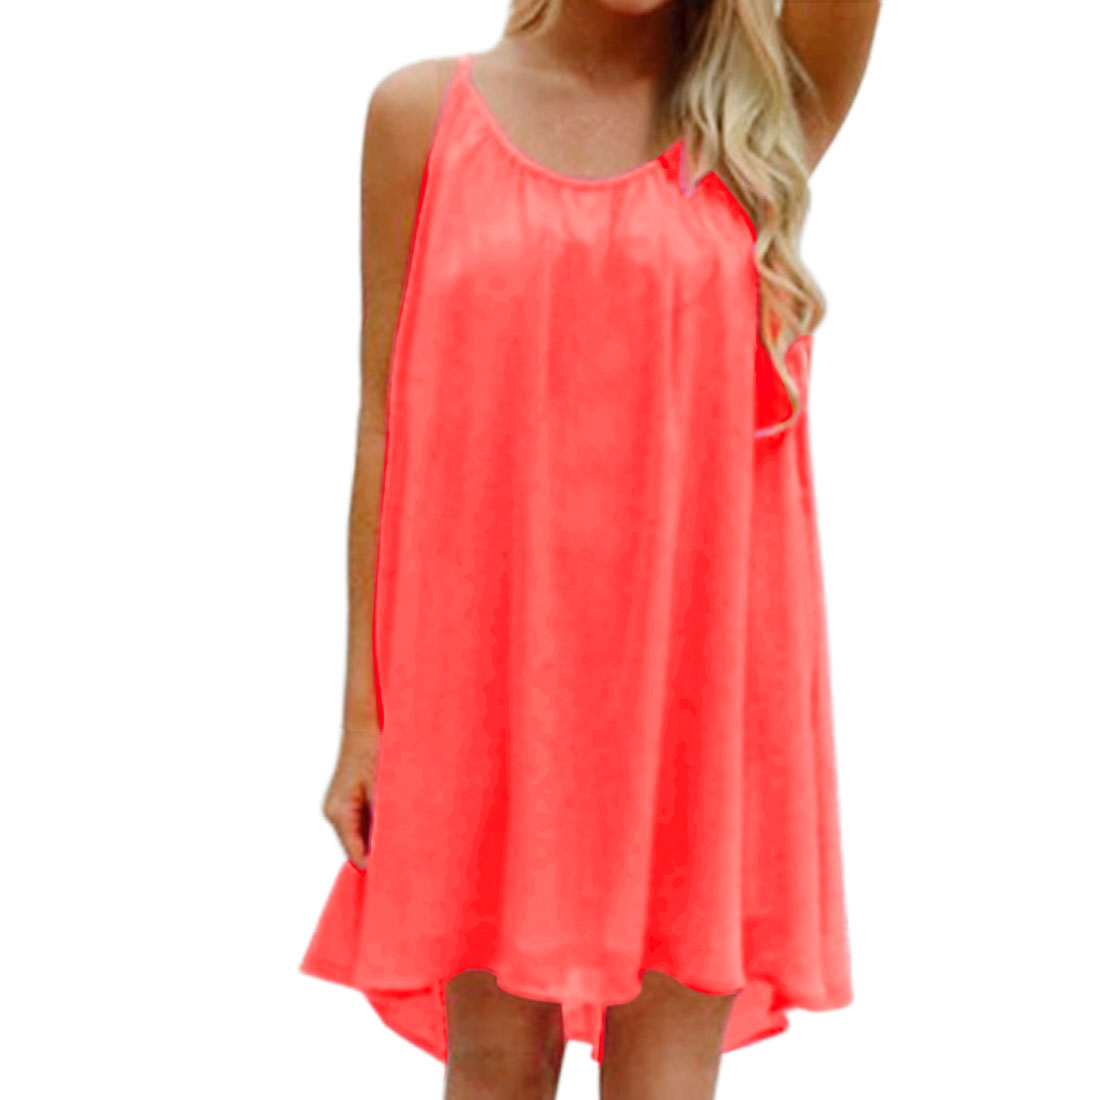 Women Spaghetti Straps Cut Out Back Chiffon Dress Deep Pink XL